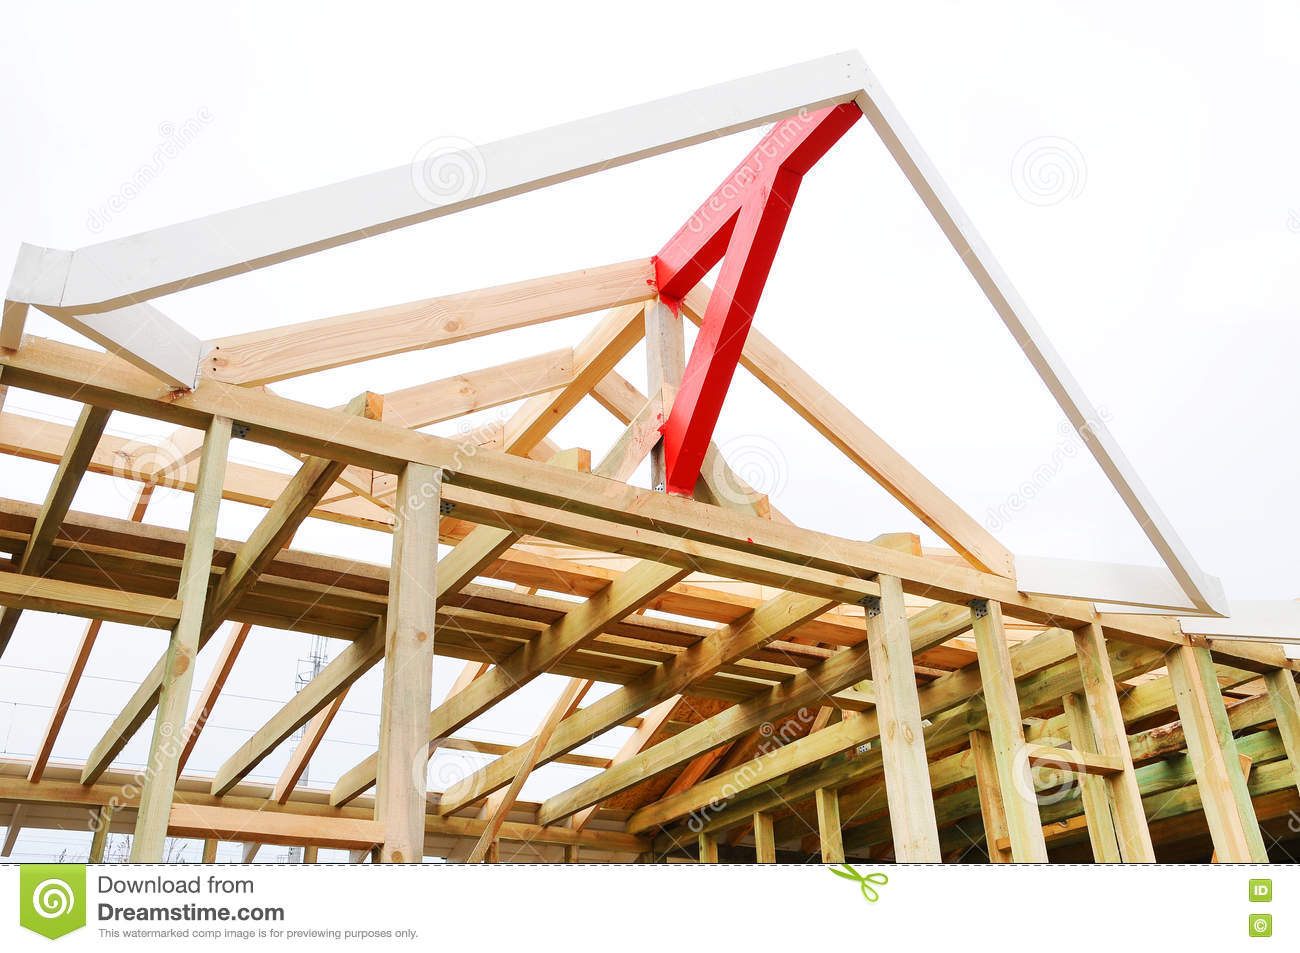 The wooden structure of the building roofing construction wooden roof frame house construction - Build wood roof abcs roof framing ...